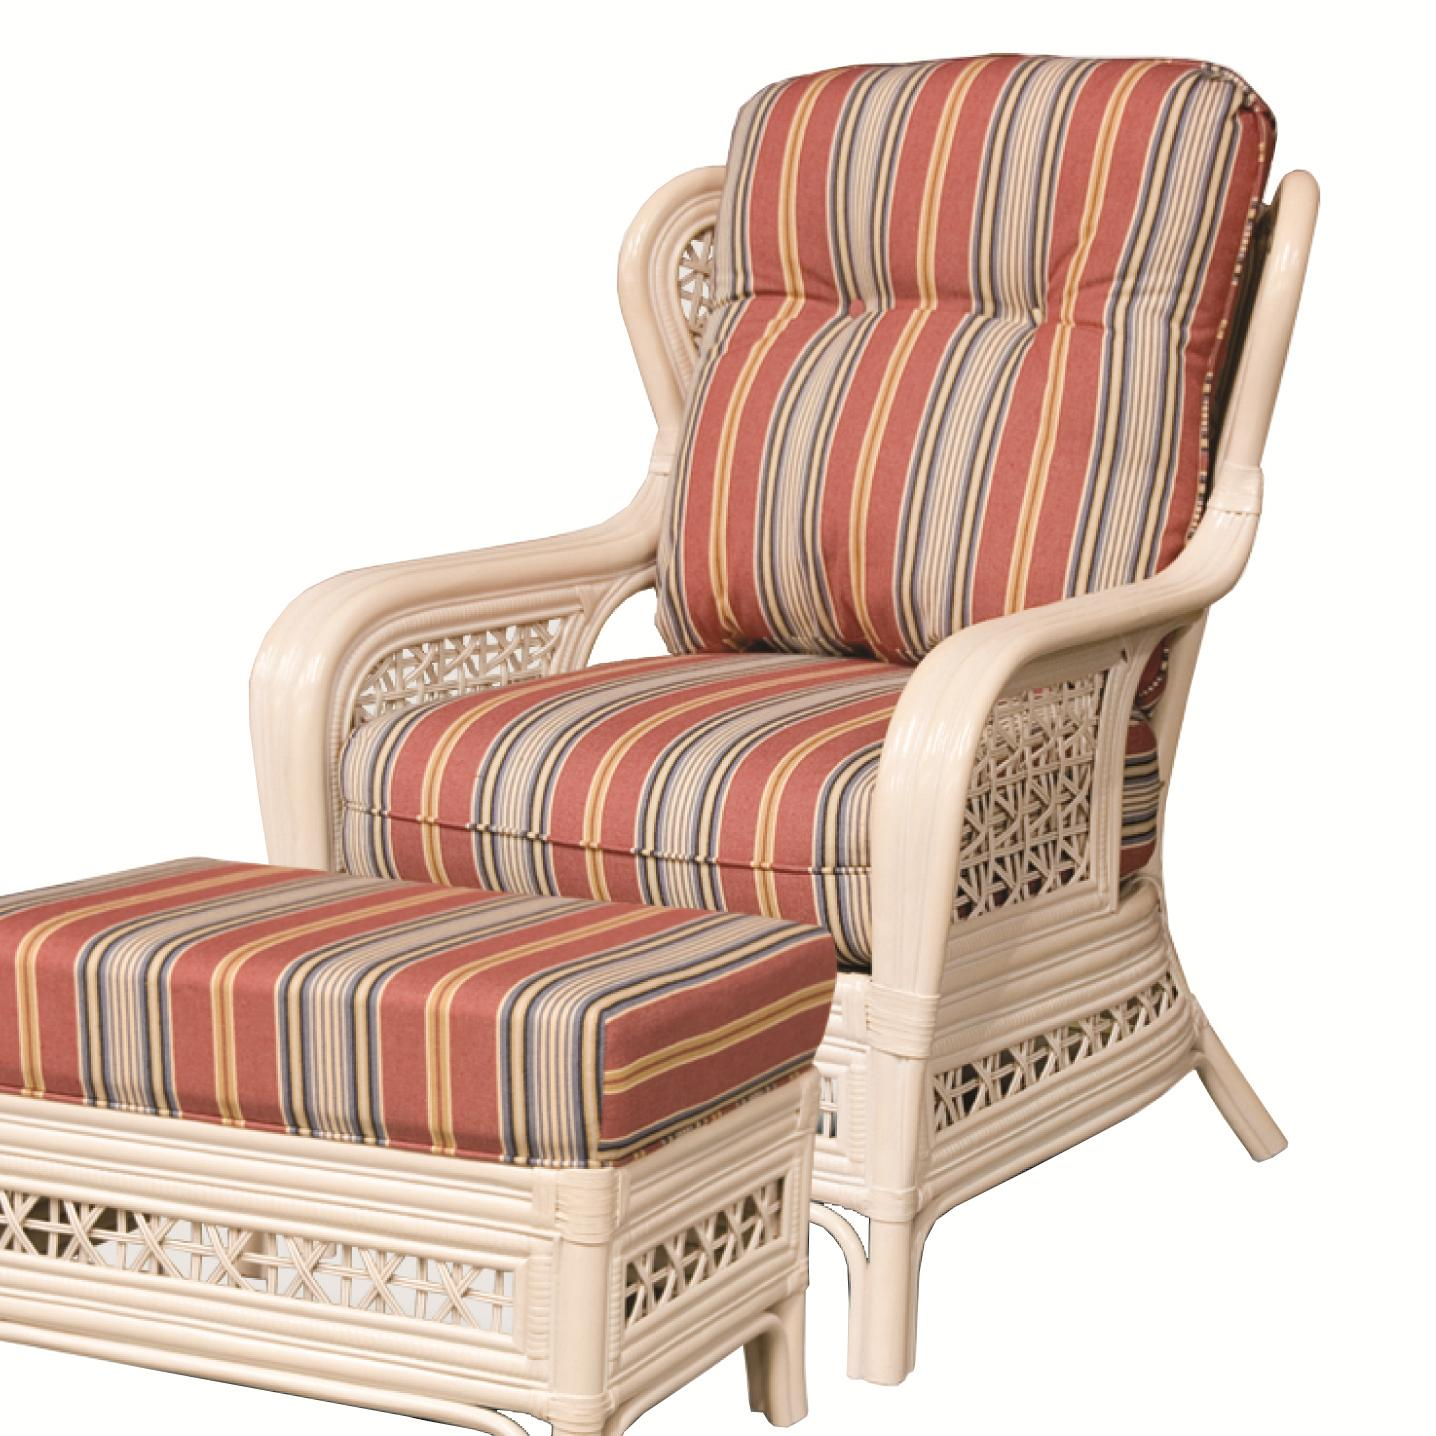 341 Collection Exposed Rattan Chair by Capris Furniture at Esprit Decor Home Furnishings